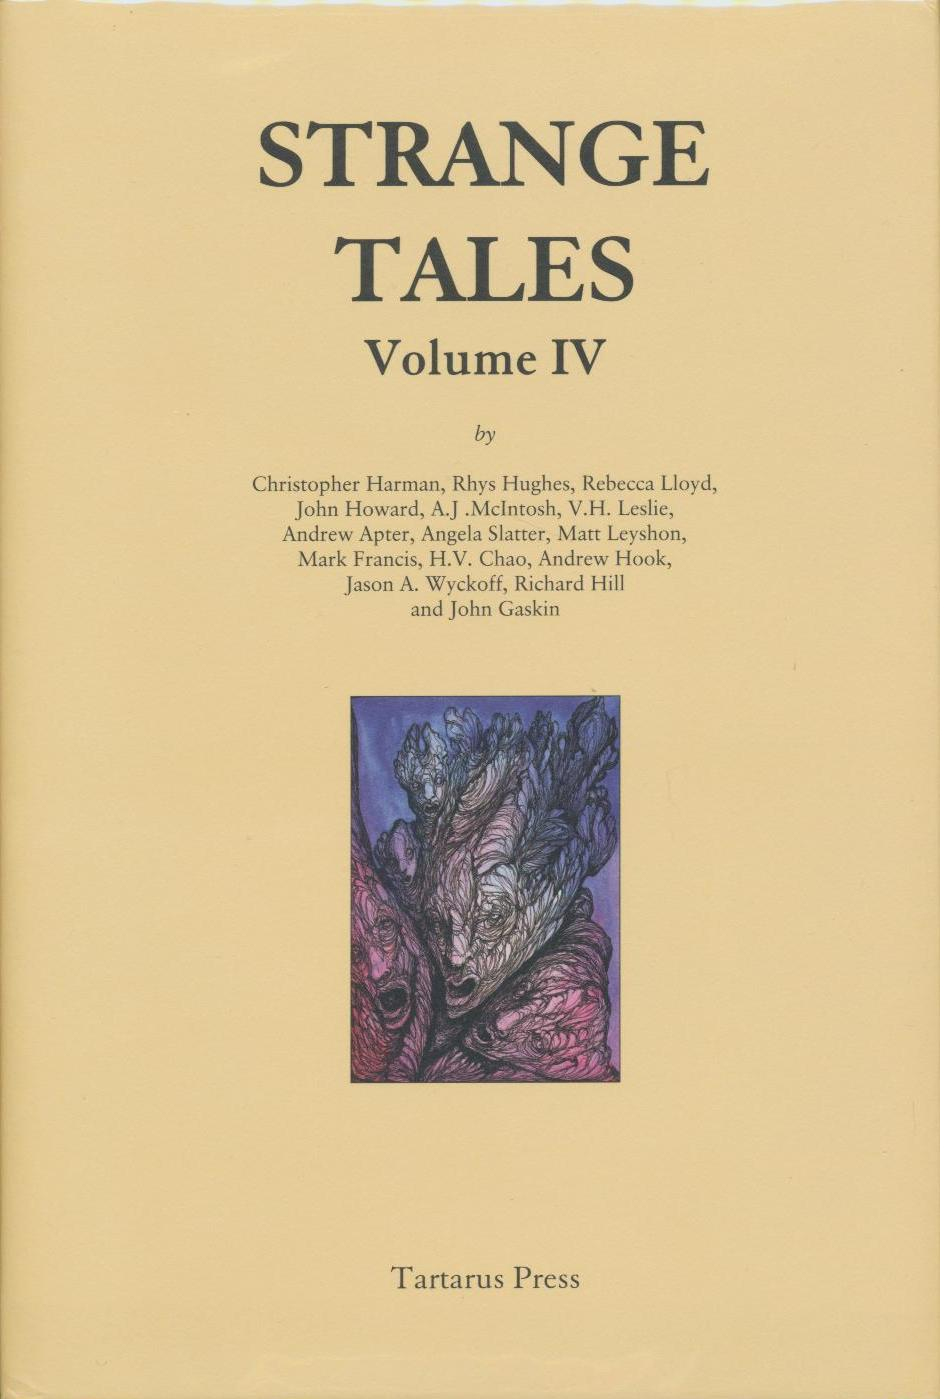 Image for Strange Tales Volume IV